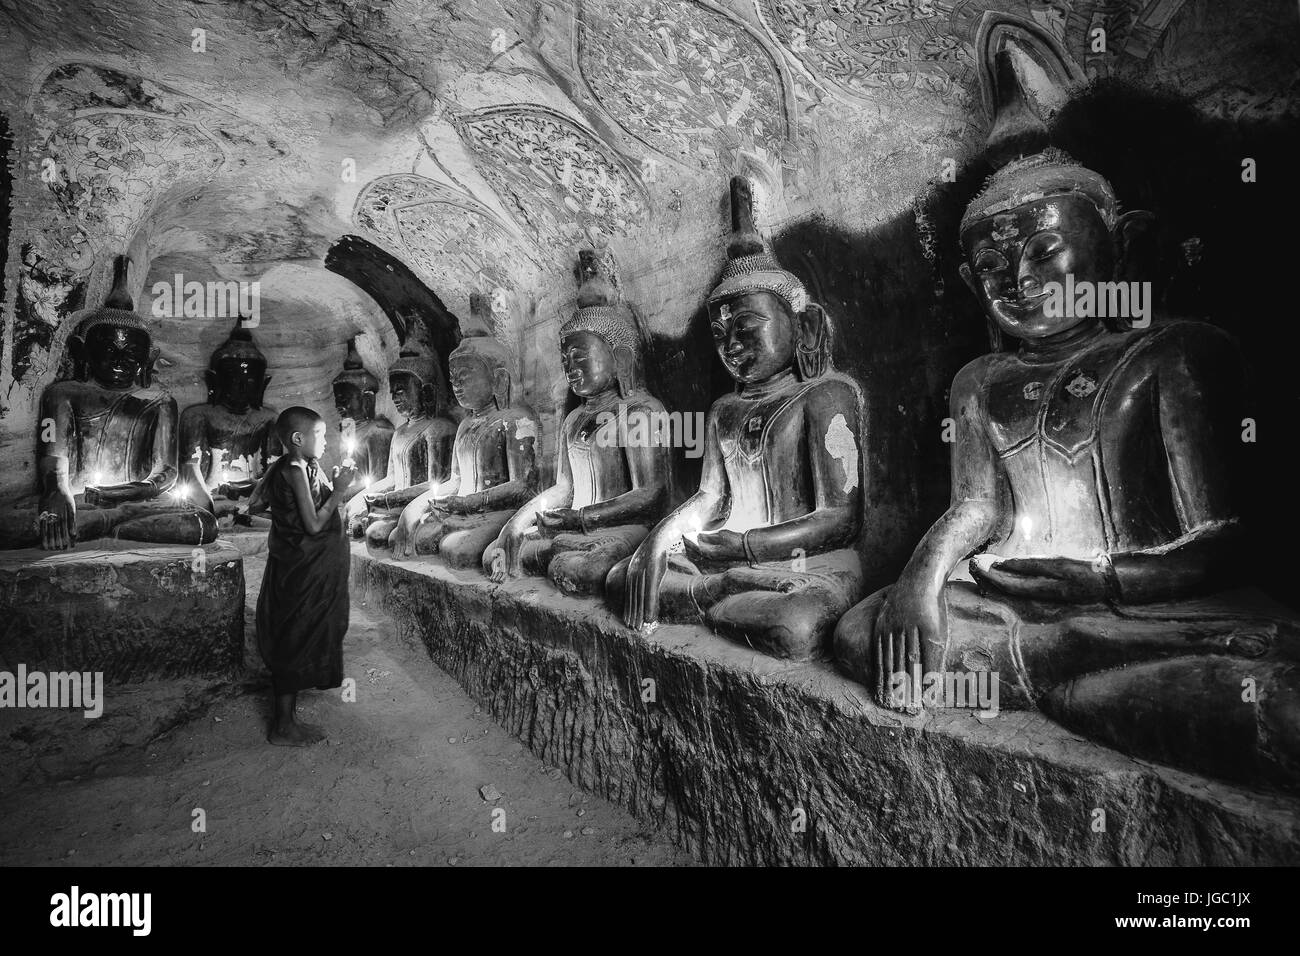 Monk praying with candle light at Po Win Taung / Hpowindaung cave - Monywa - Sagaing region - Northern Myanmar Stock Photo